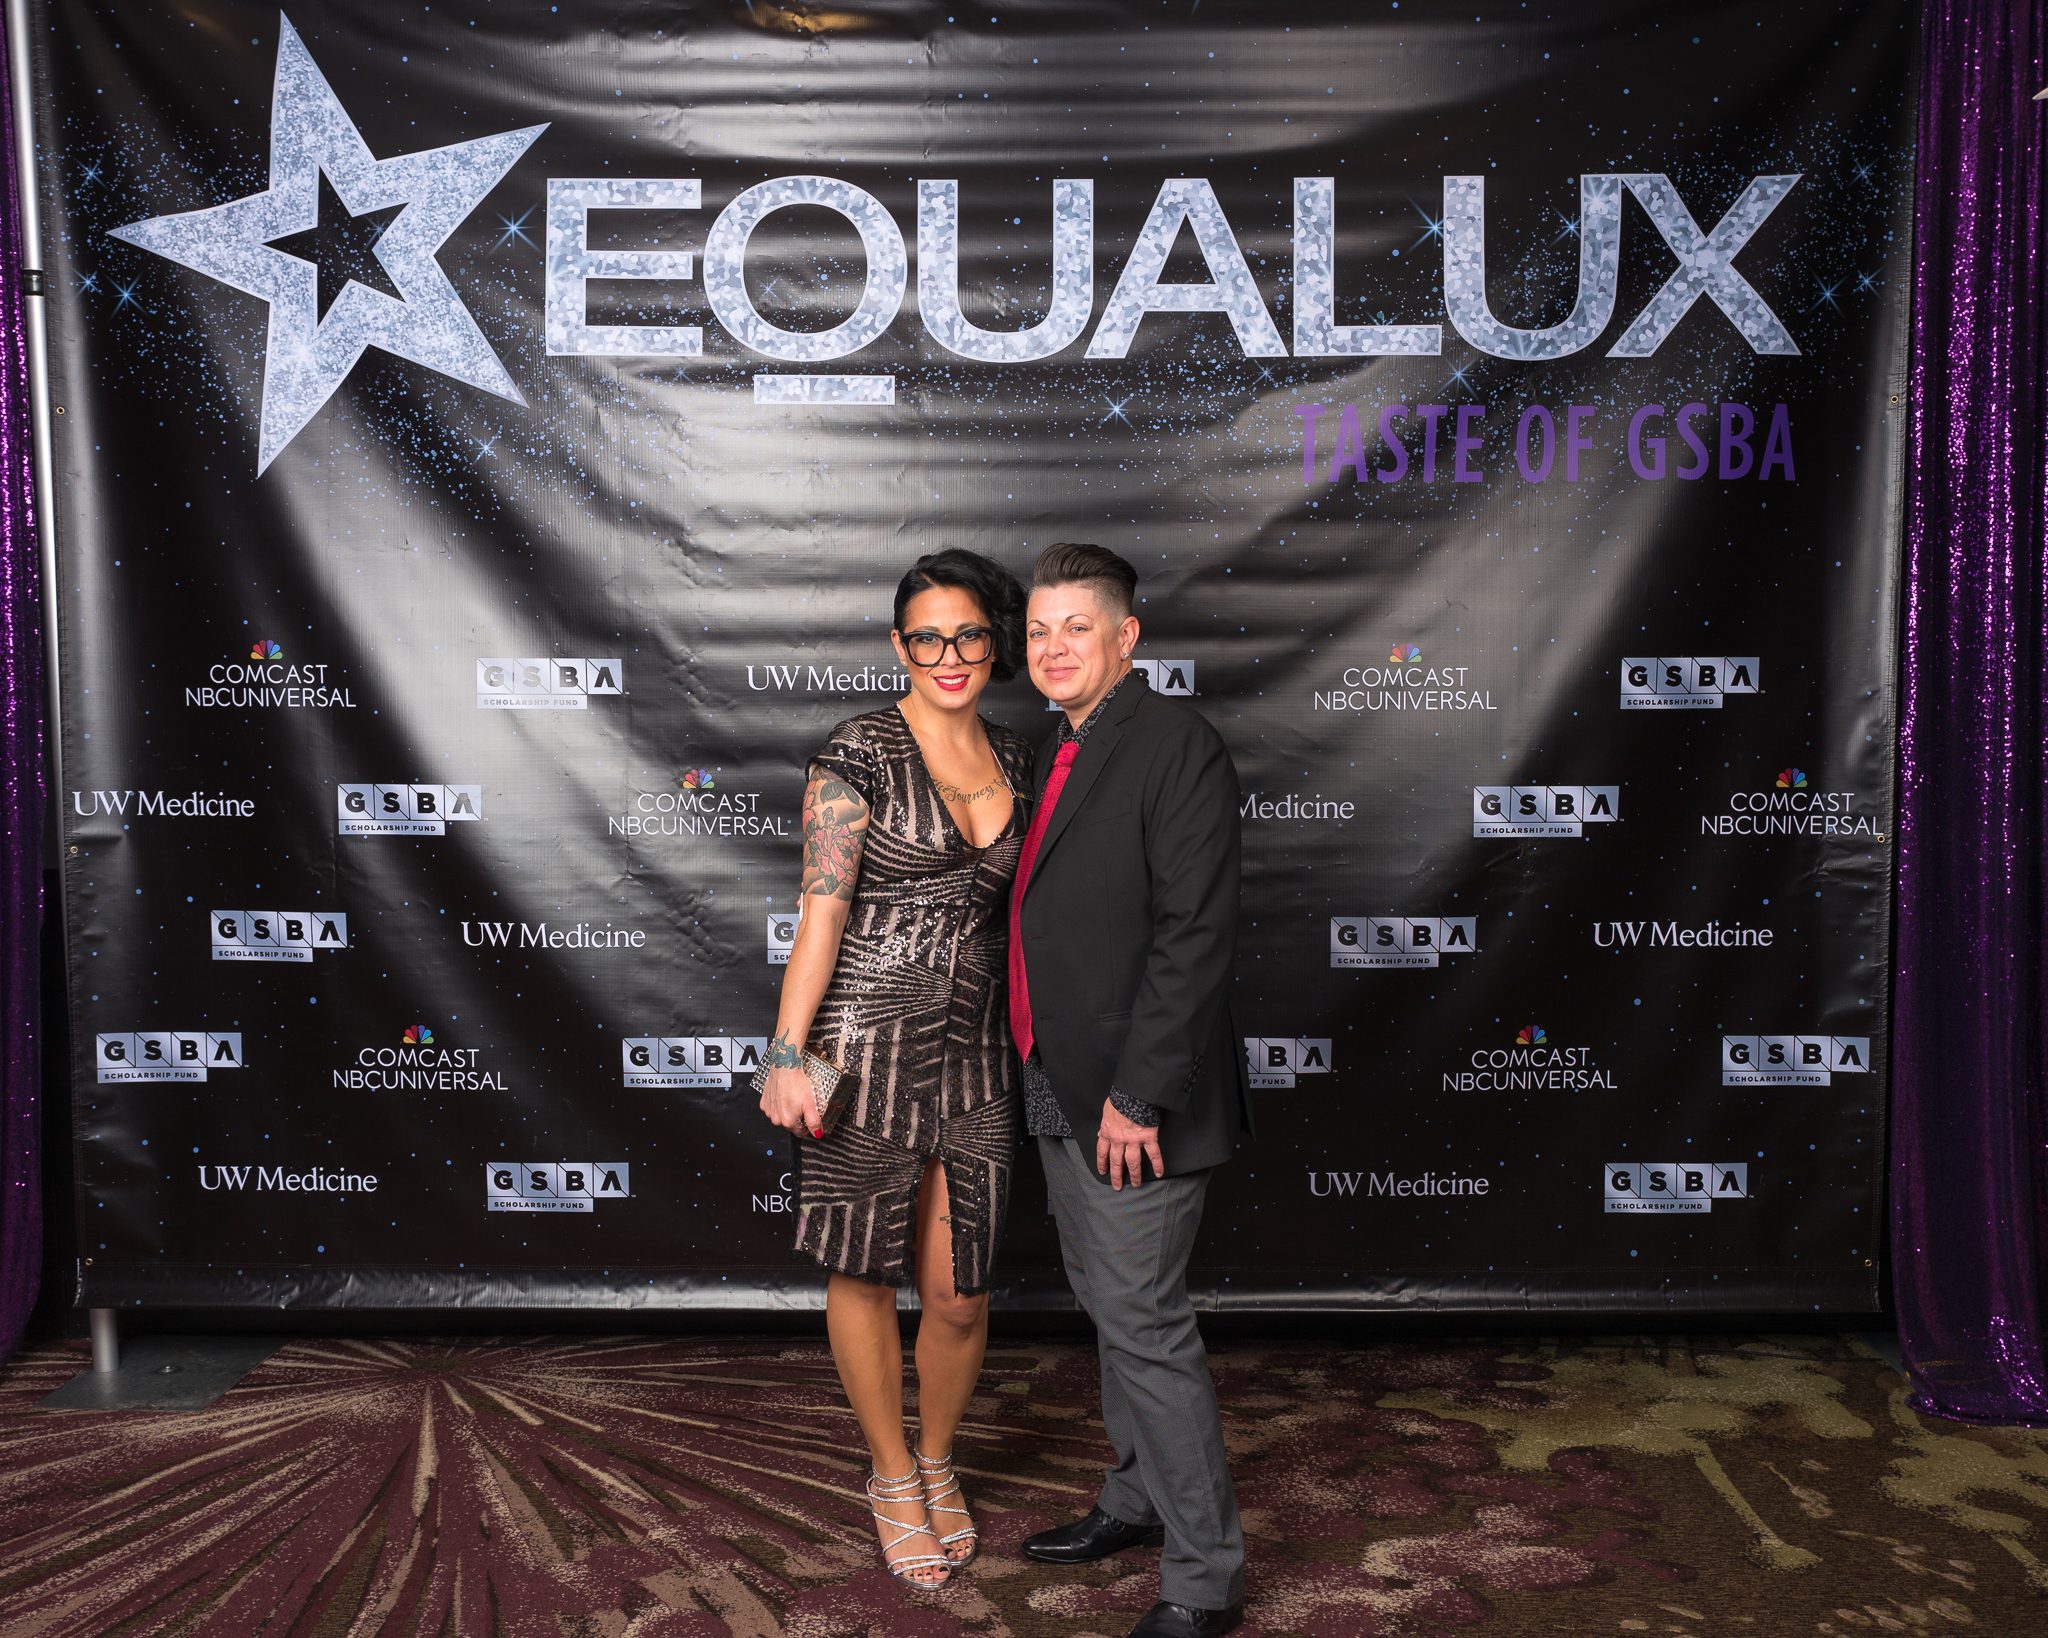 111718_GSBA EQUALUX at The Westin Seattle (Credit- Nate Gowdy)-73.jpg